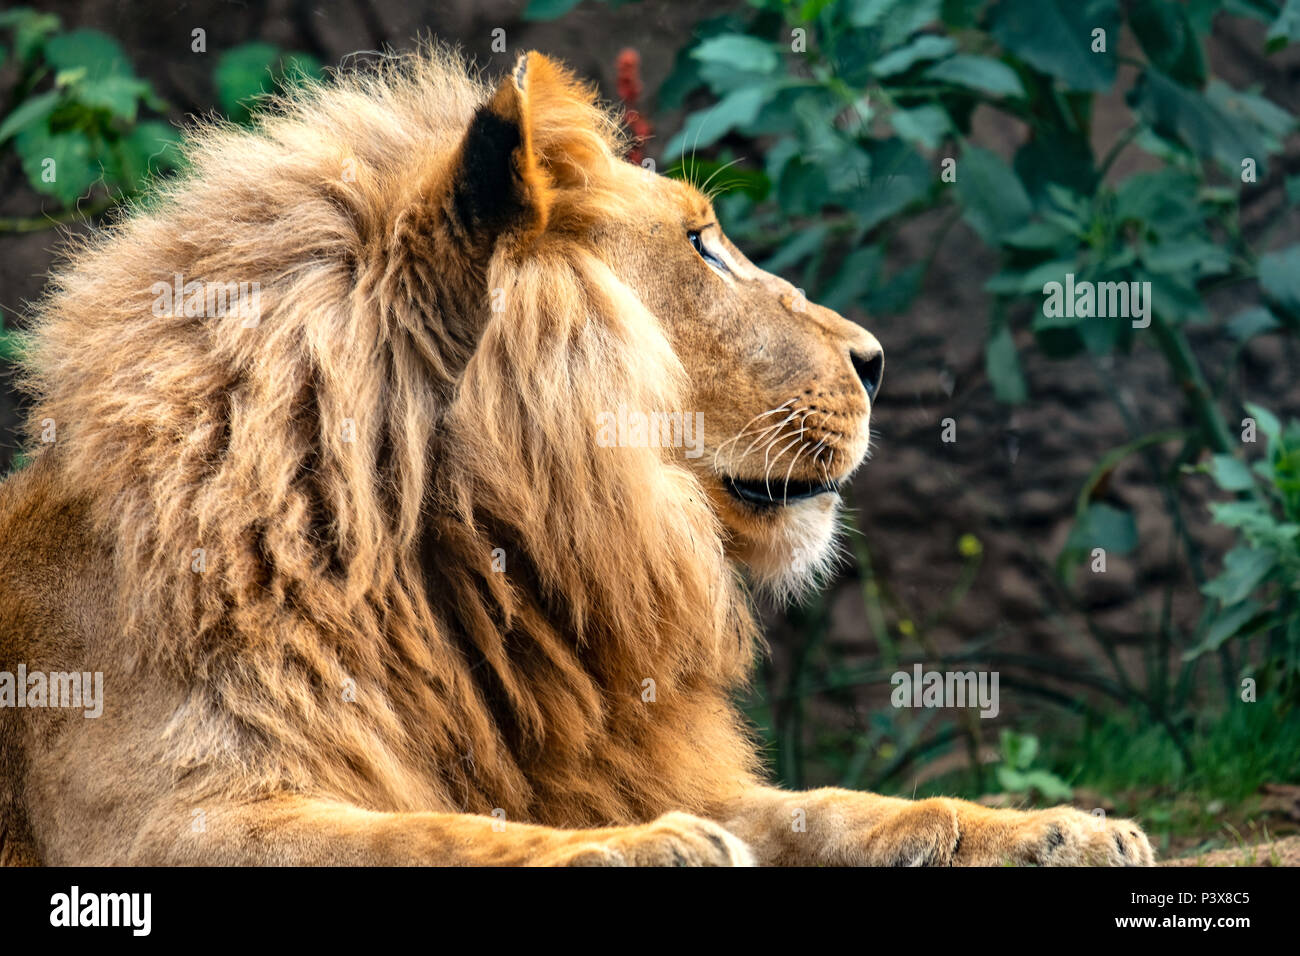 A magnificent lion male has made himself comfortable and lies in the shade under a tree. It was full and satisfied, so I could approach very close. - Stock Image